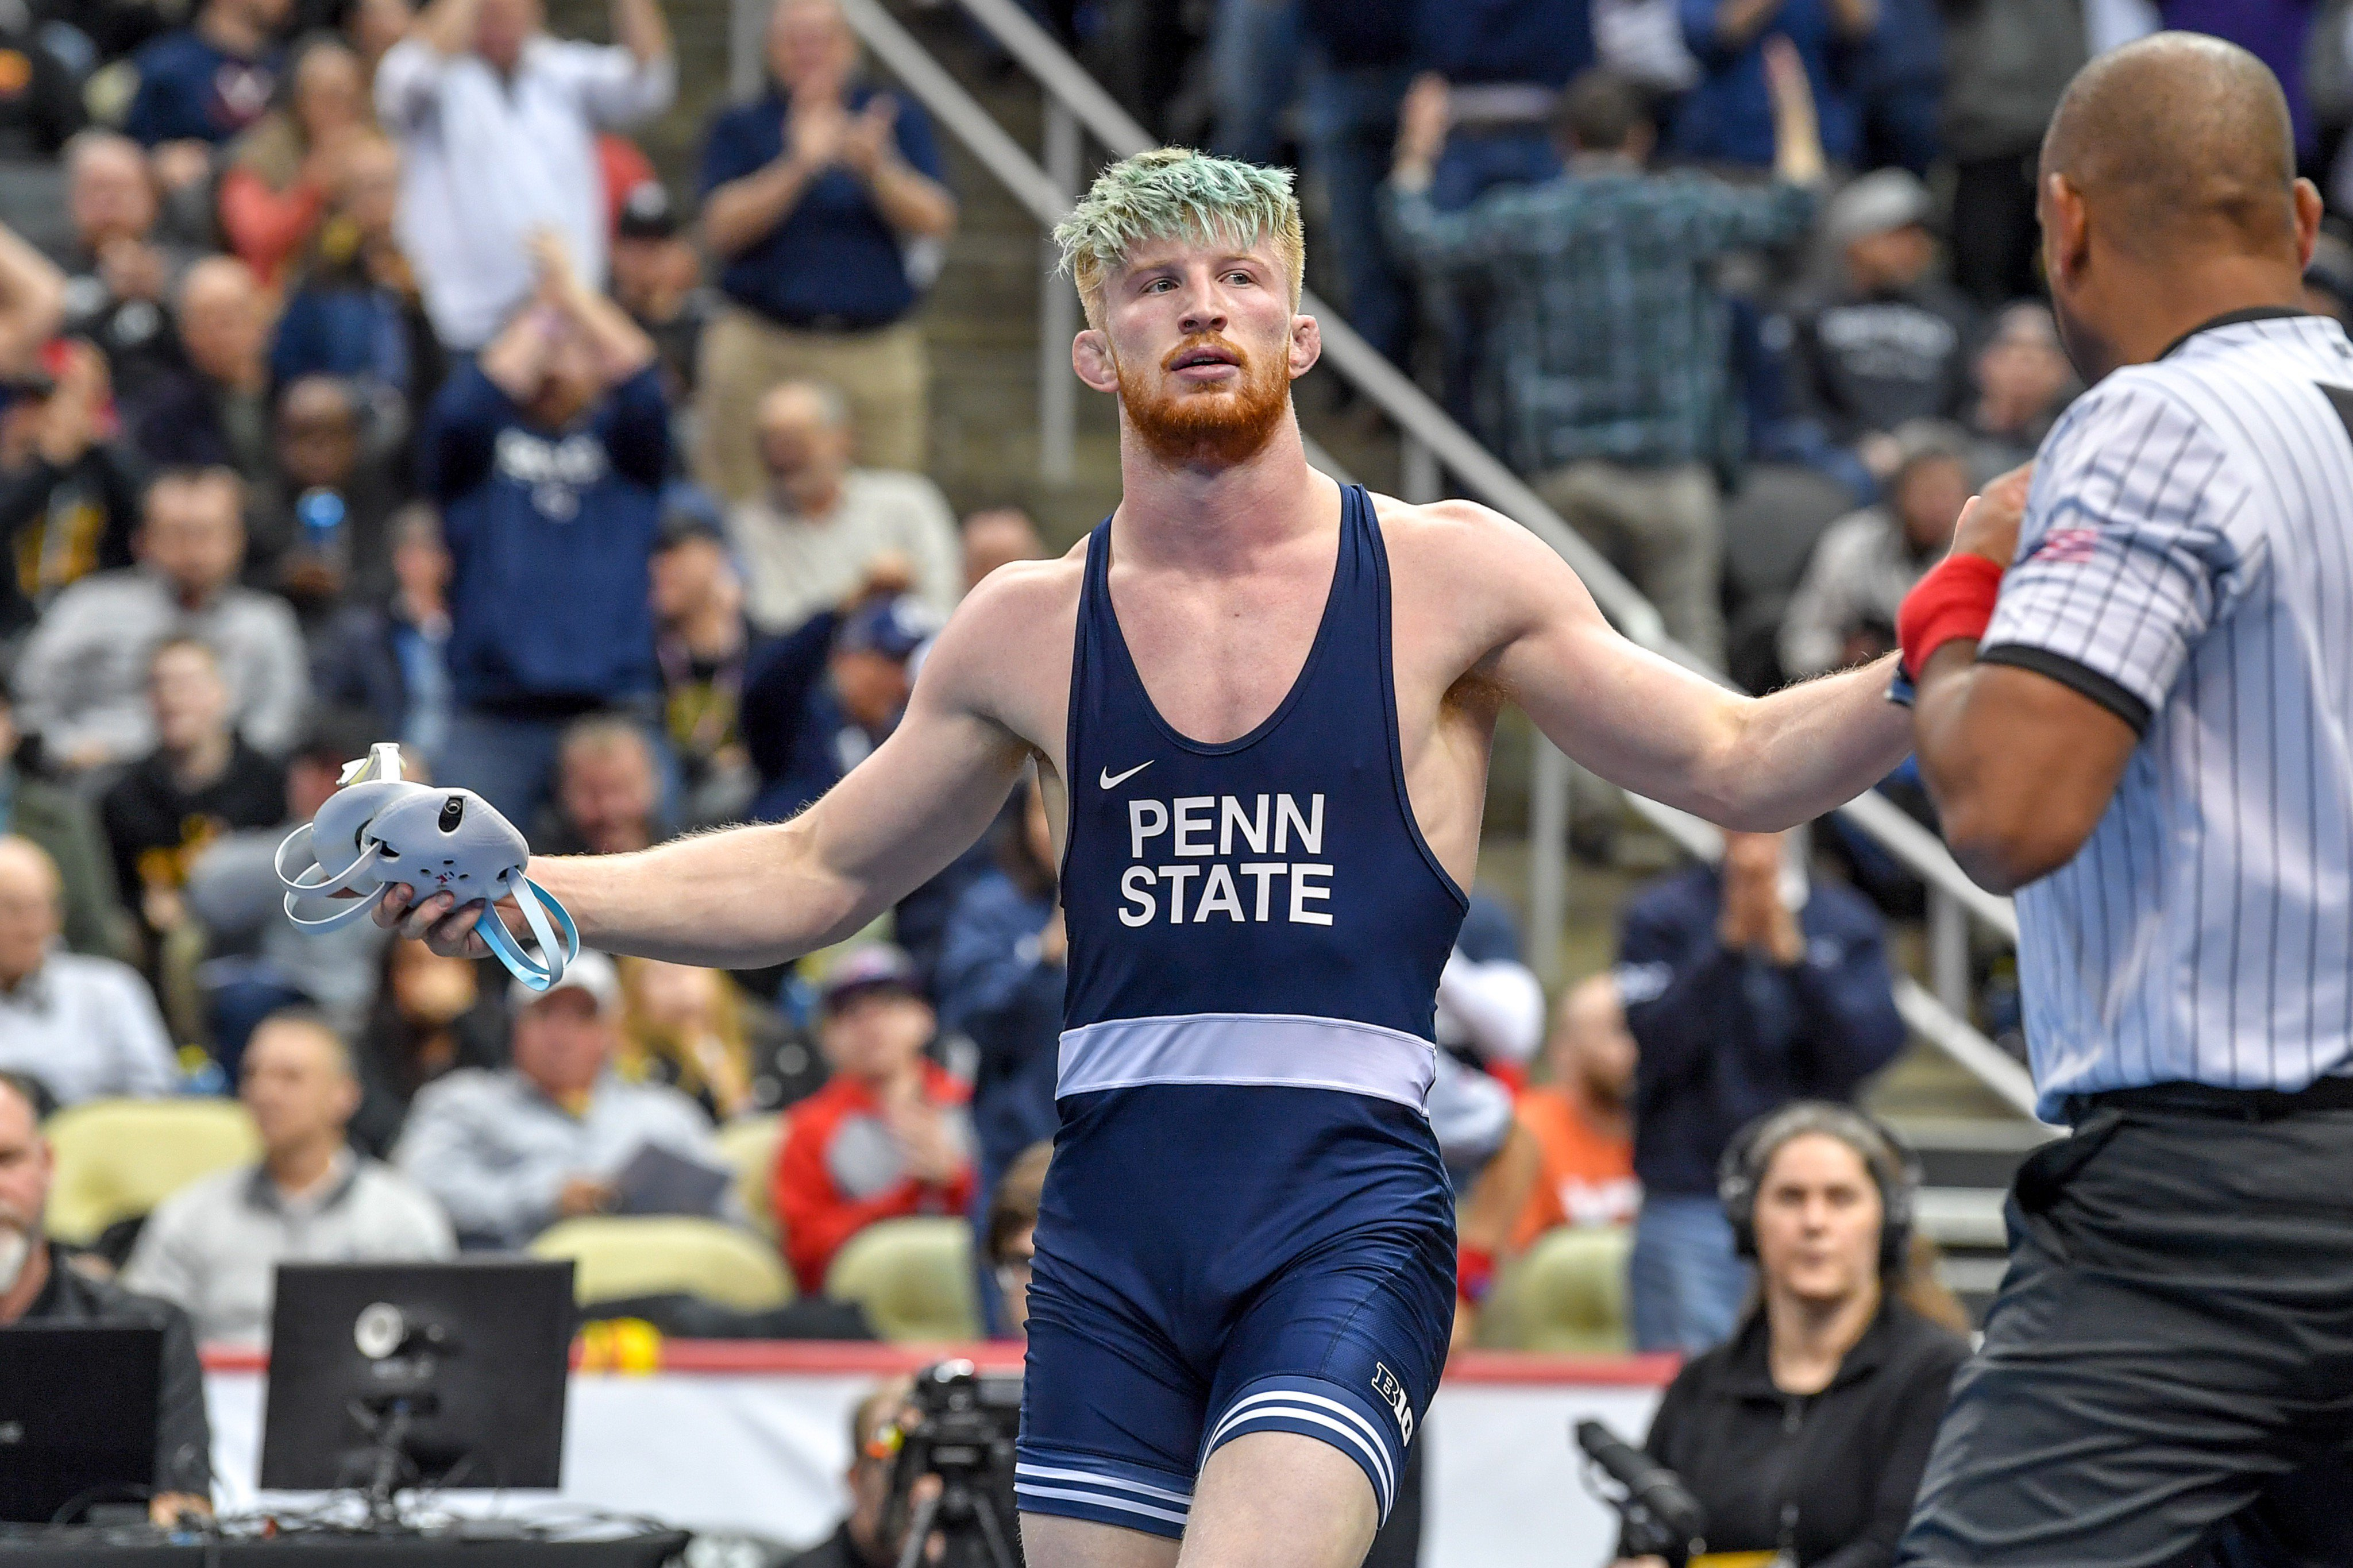 Penn State wrestling: Bo Nickal wins the Hodge Trophy